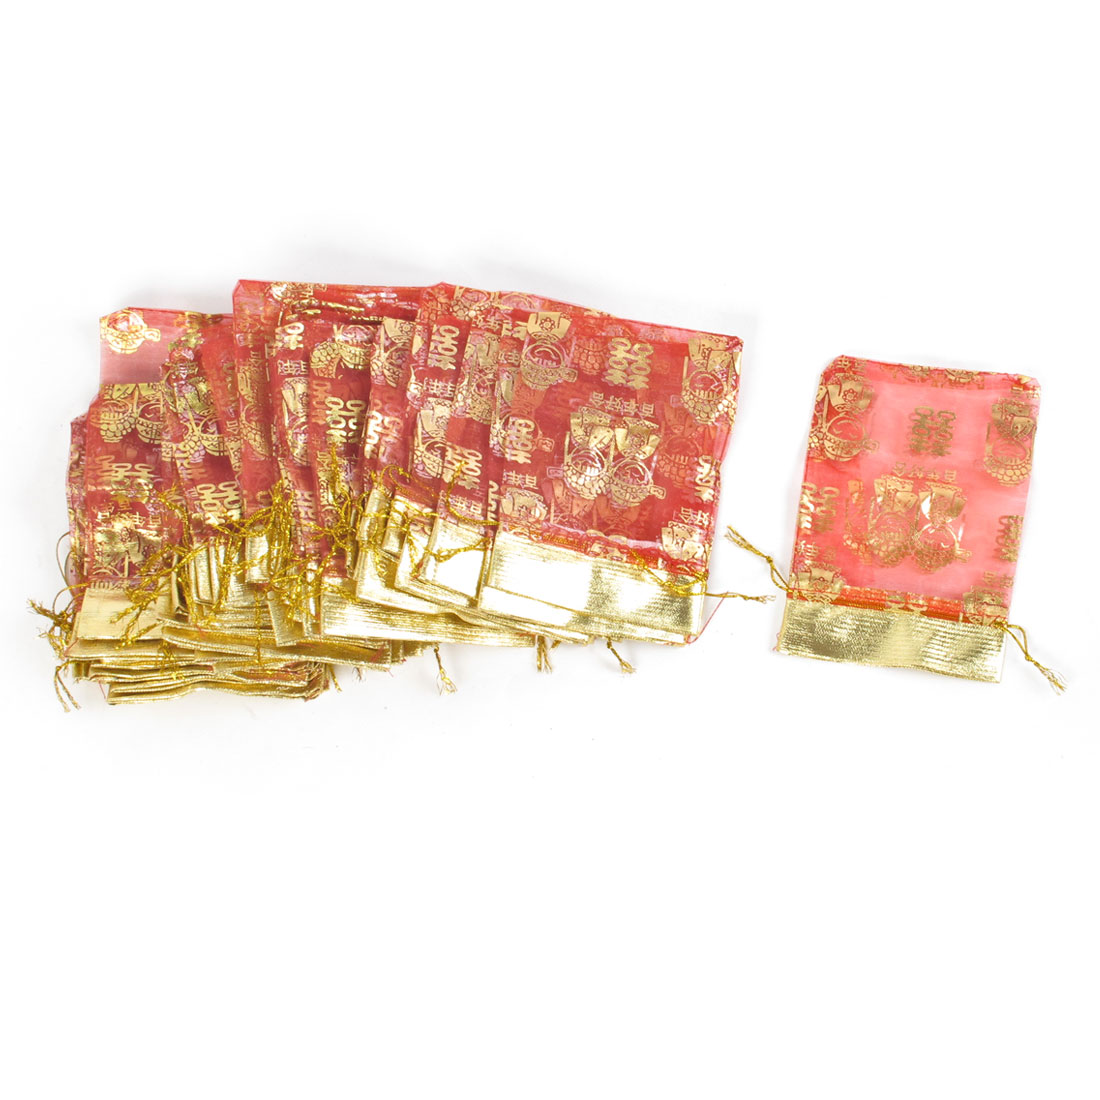 50 Pcs Gold Tone Double Happiness Pattern Red Organza Gift Bags